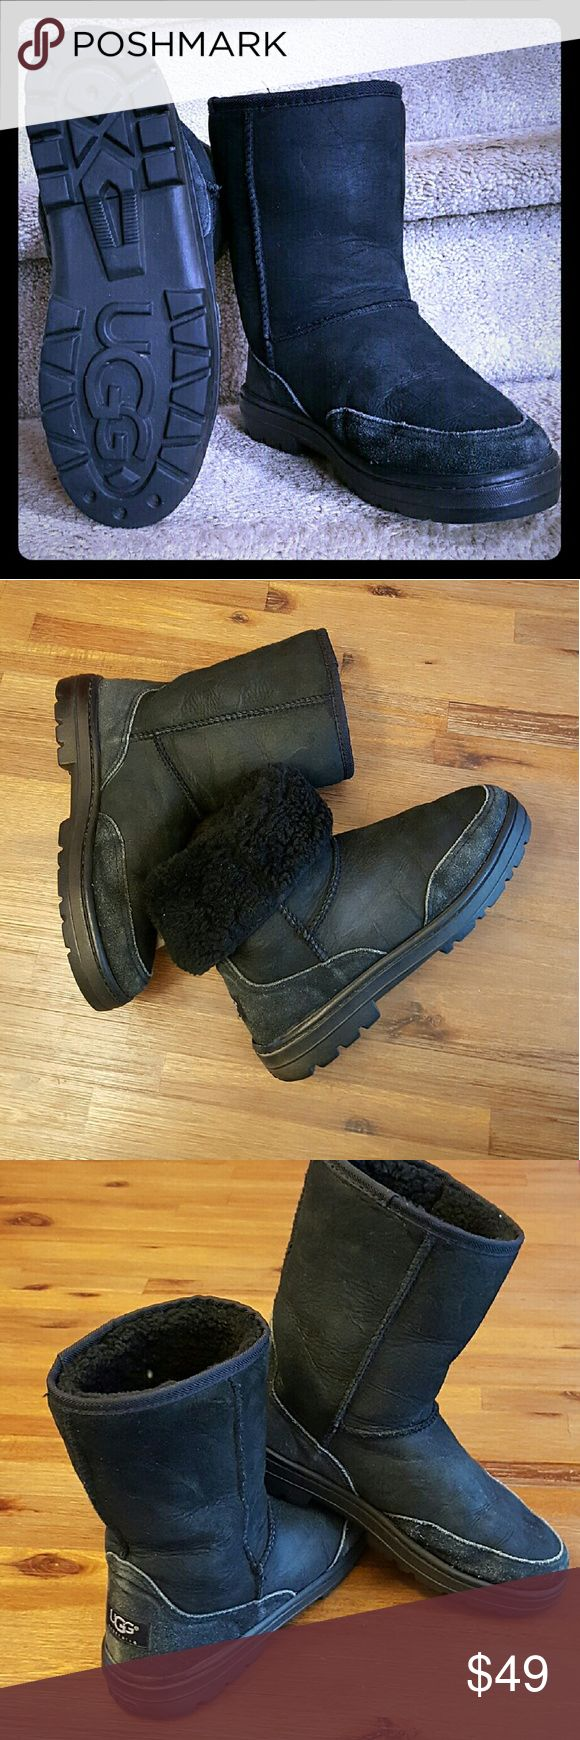 UGG ultra short 5225 black sz W7 Very popular discontinued #5225 sheepskin water resistant UGGS with normal wear in black. Insoles matted and will need replacement they are $8-15 online or in UGGS store. These are great boots and durable if you know your UGGS. Reasonable offers considered. UGG Shoes Winter & Rain Boots